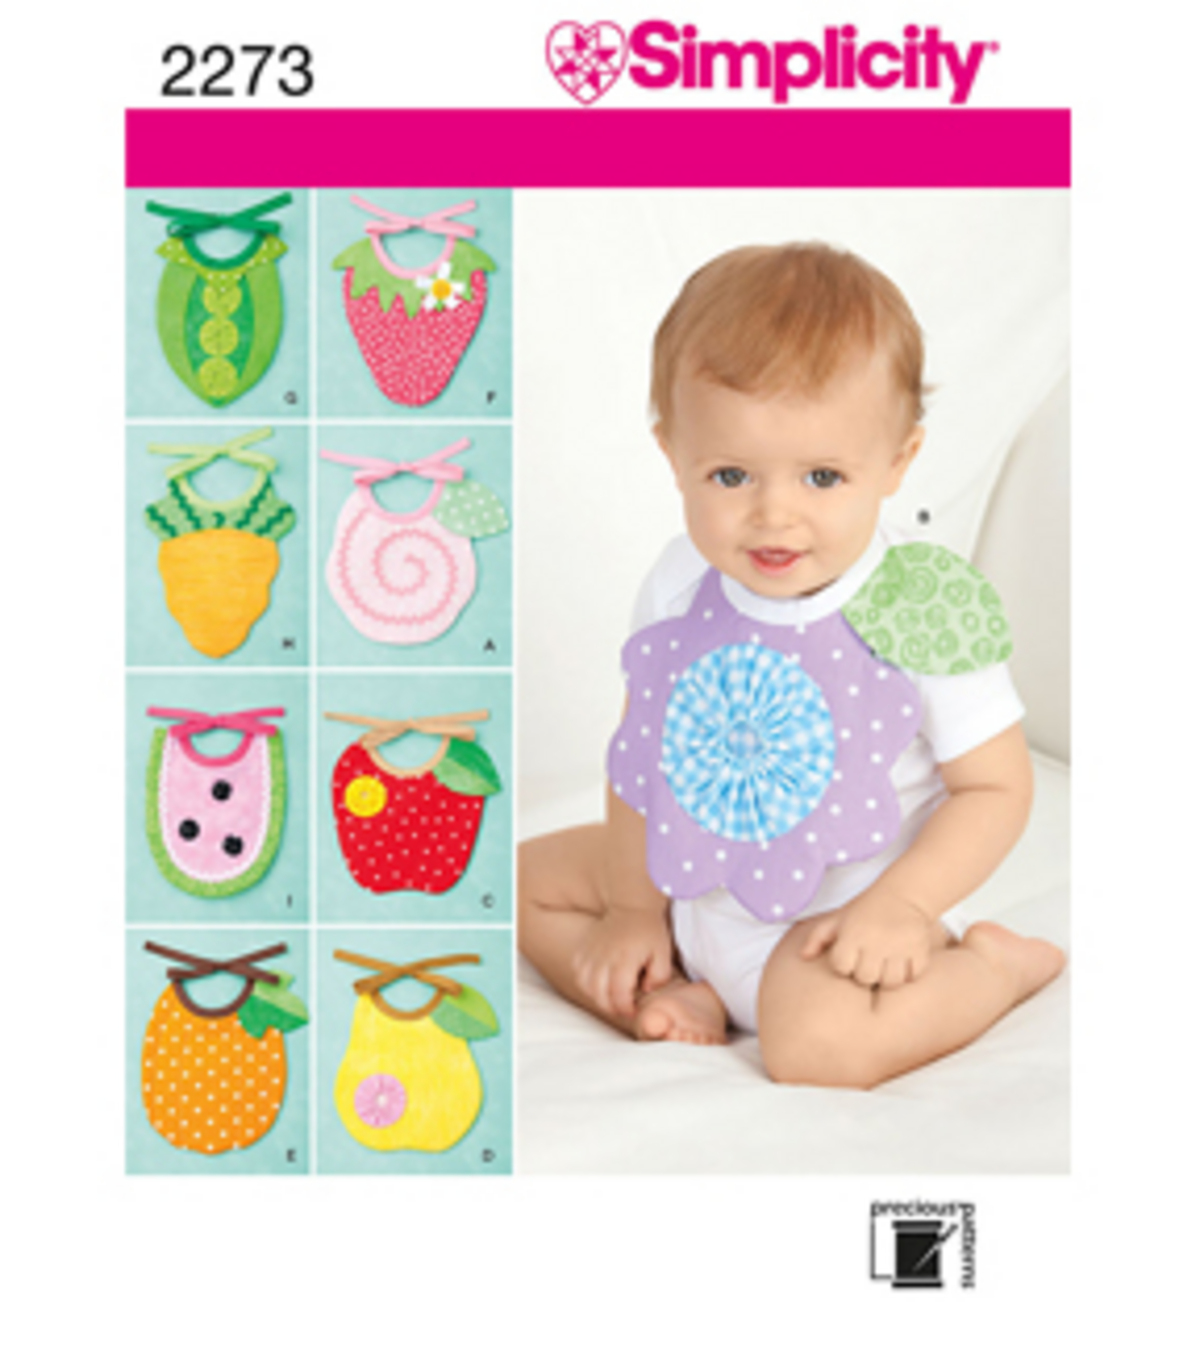 Simplicity Pattern 2273OS One Size -Simplicity Crafts